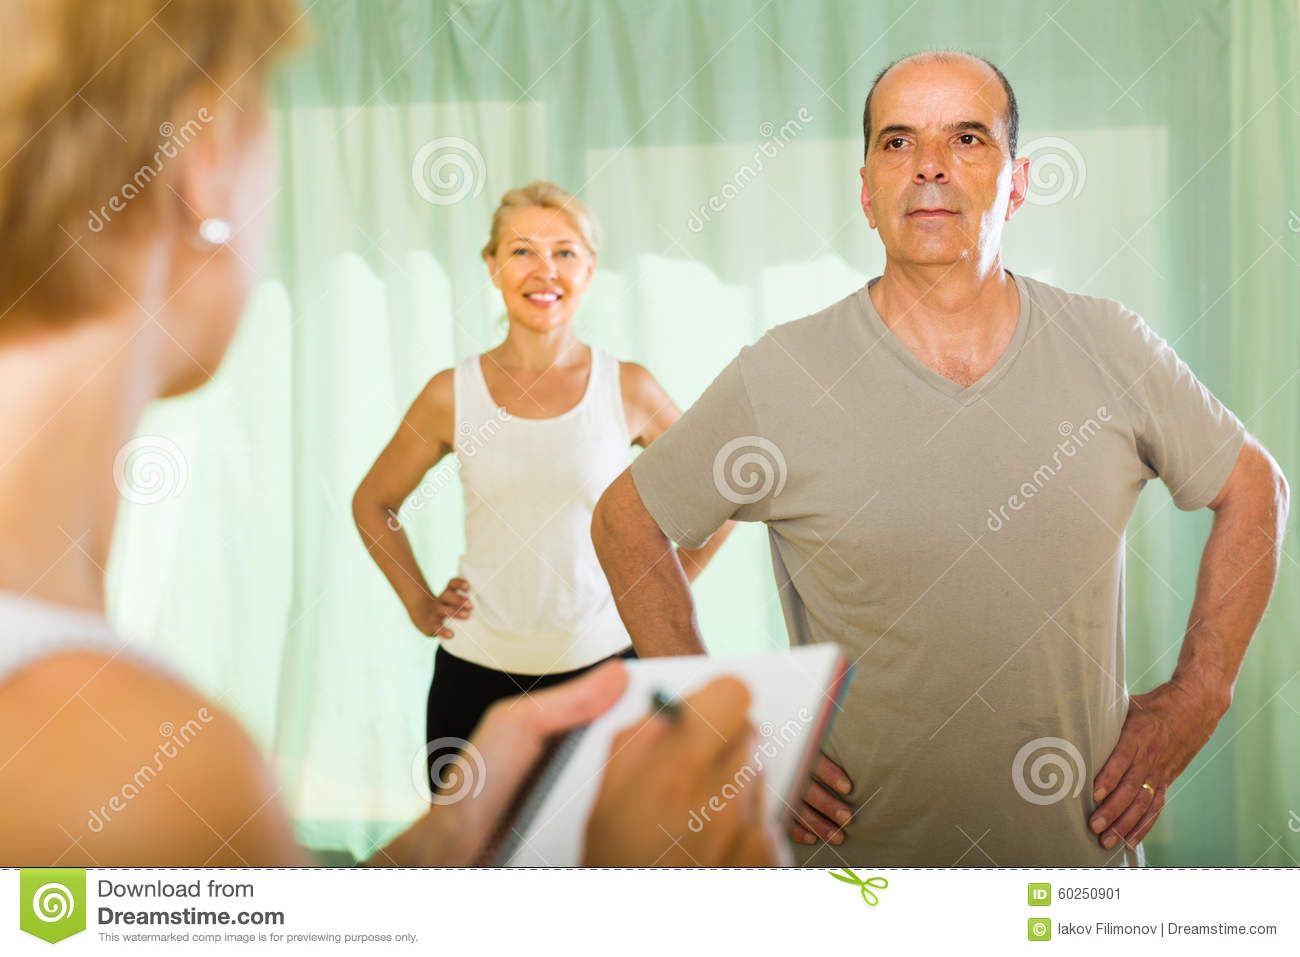 Medical Staff With Senior People At Gym Stock Image